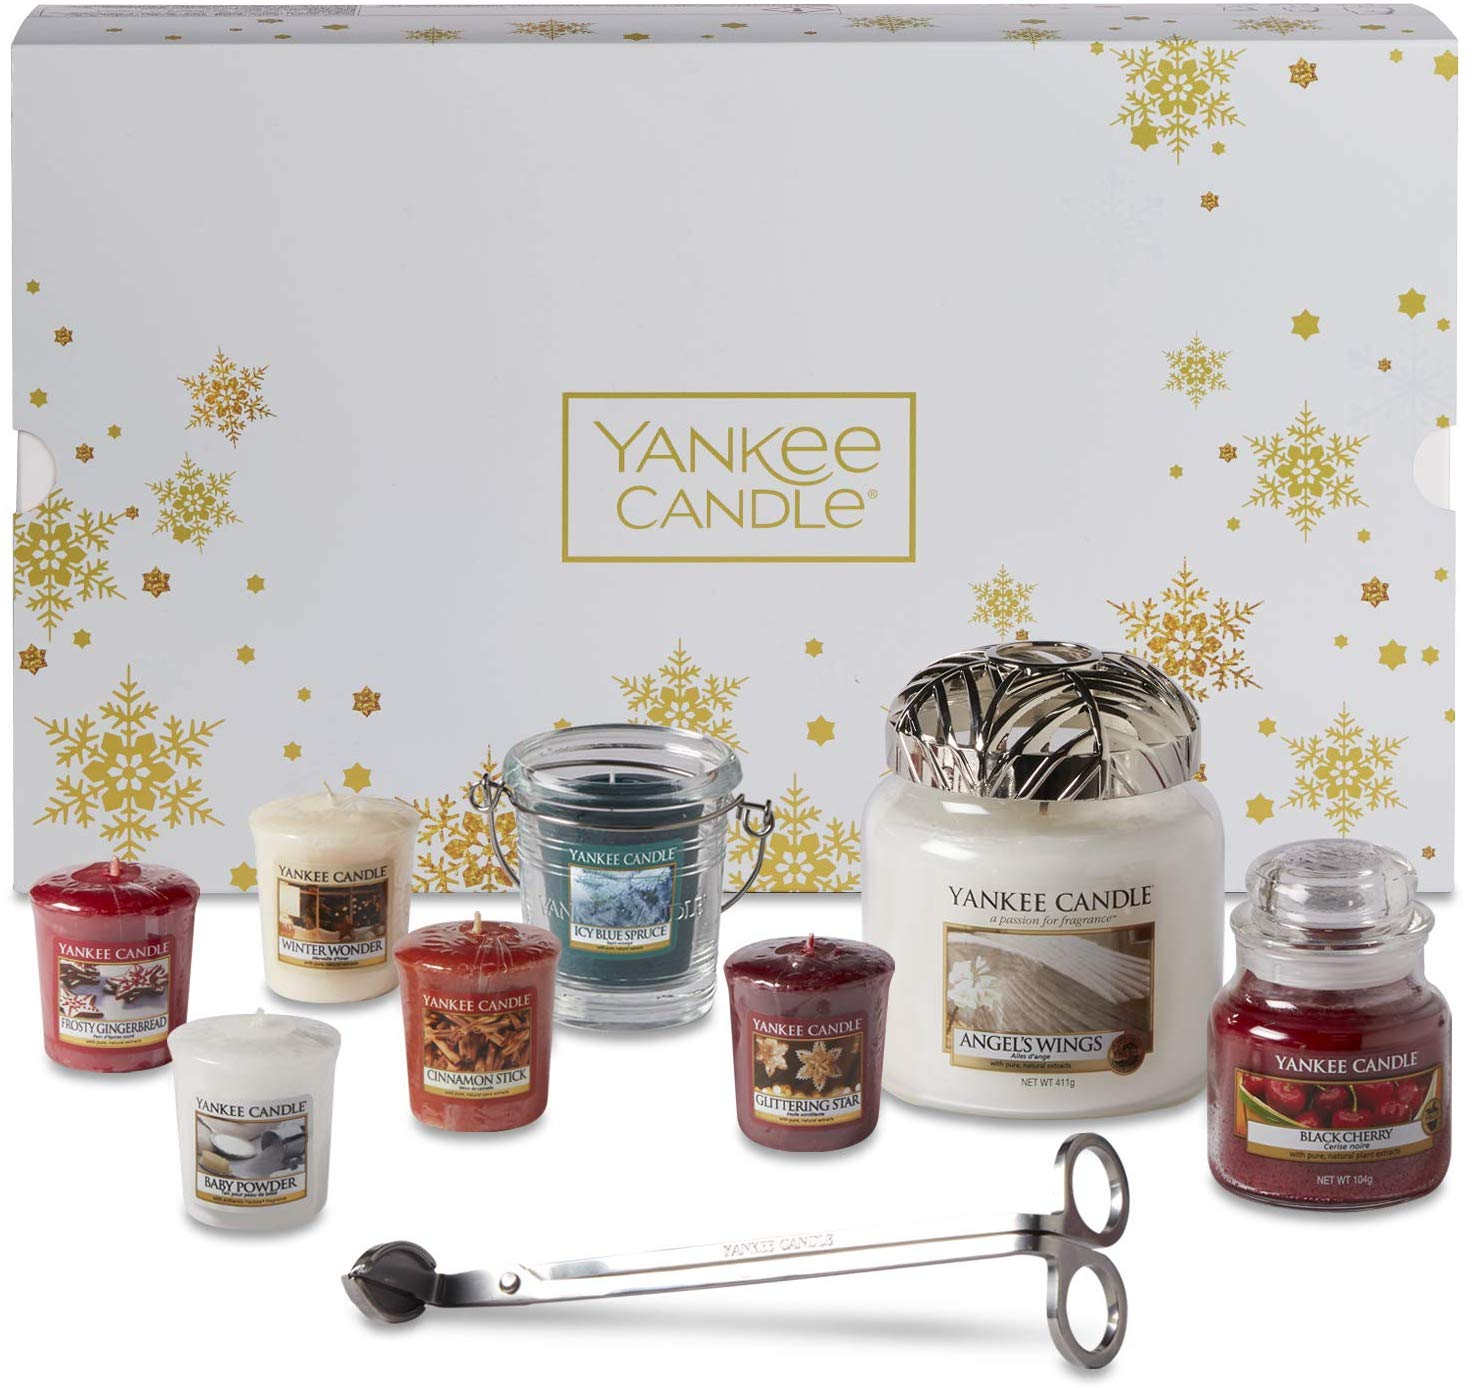 Yankee Candle Christmas Gift Set with Scented Candles & Accessories, 11-Piece for £27.99